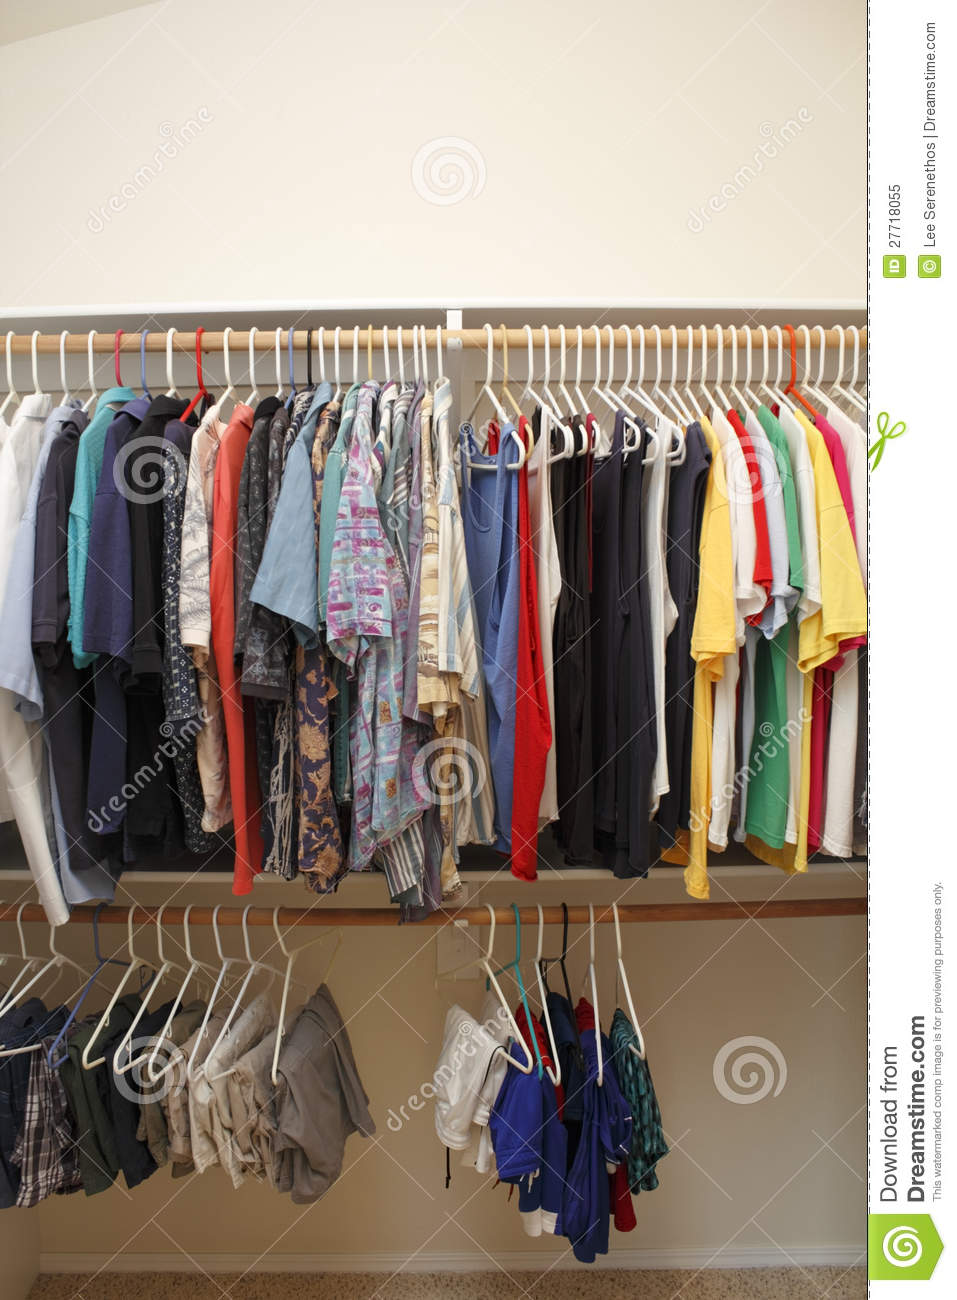 s clothes in a closet royalty free stock photo image